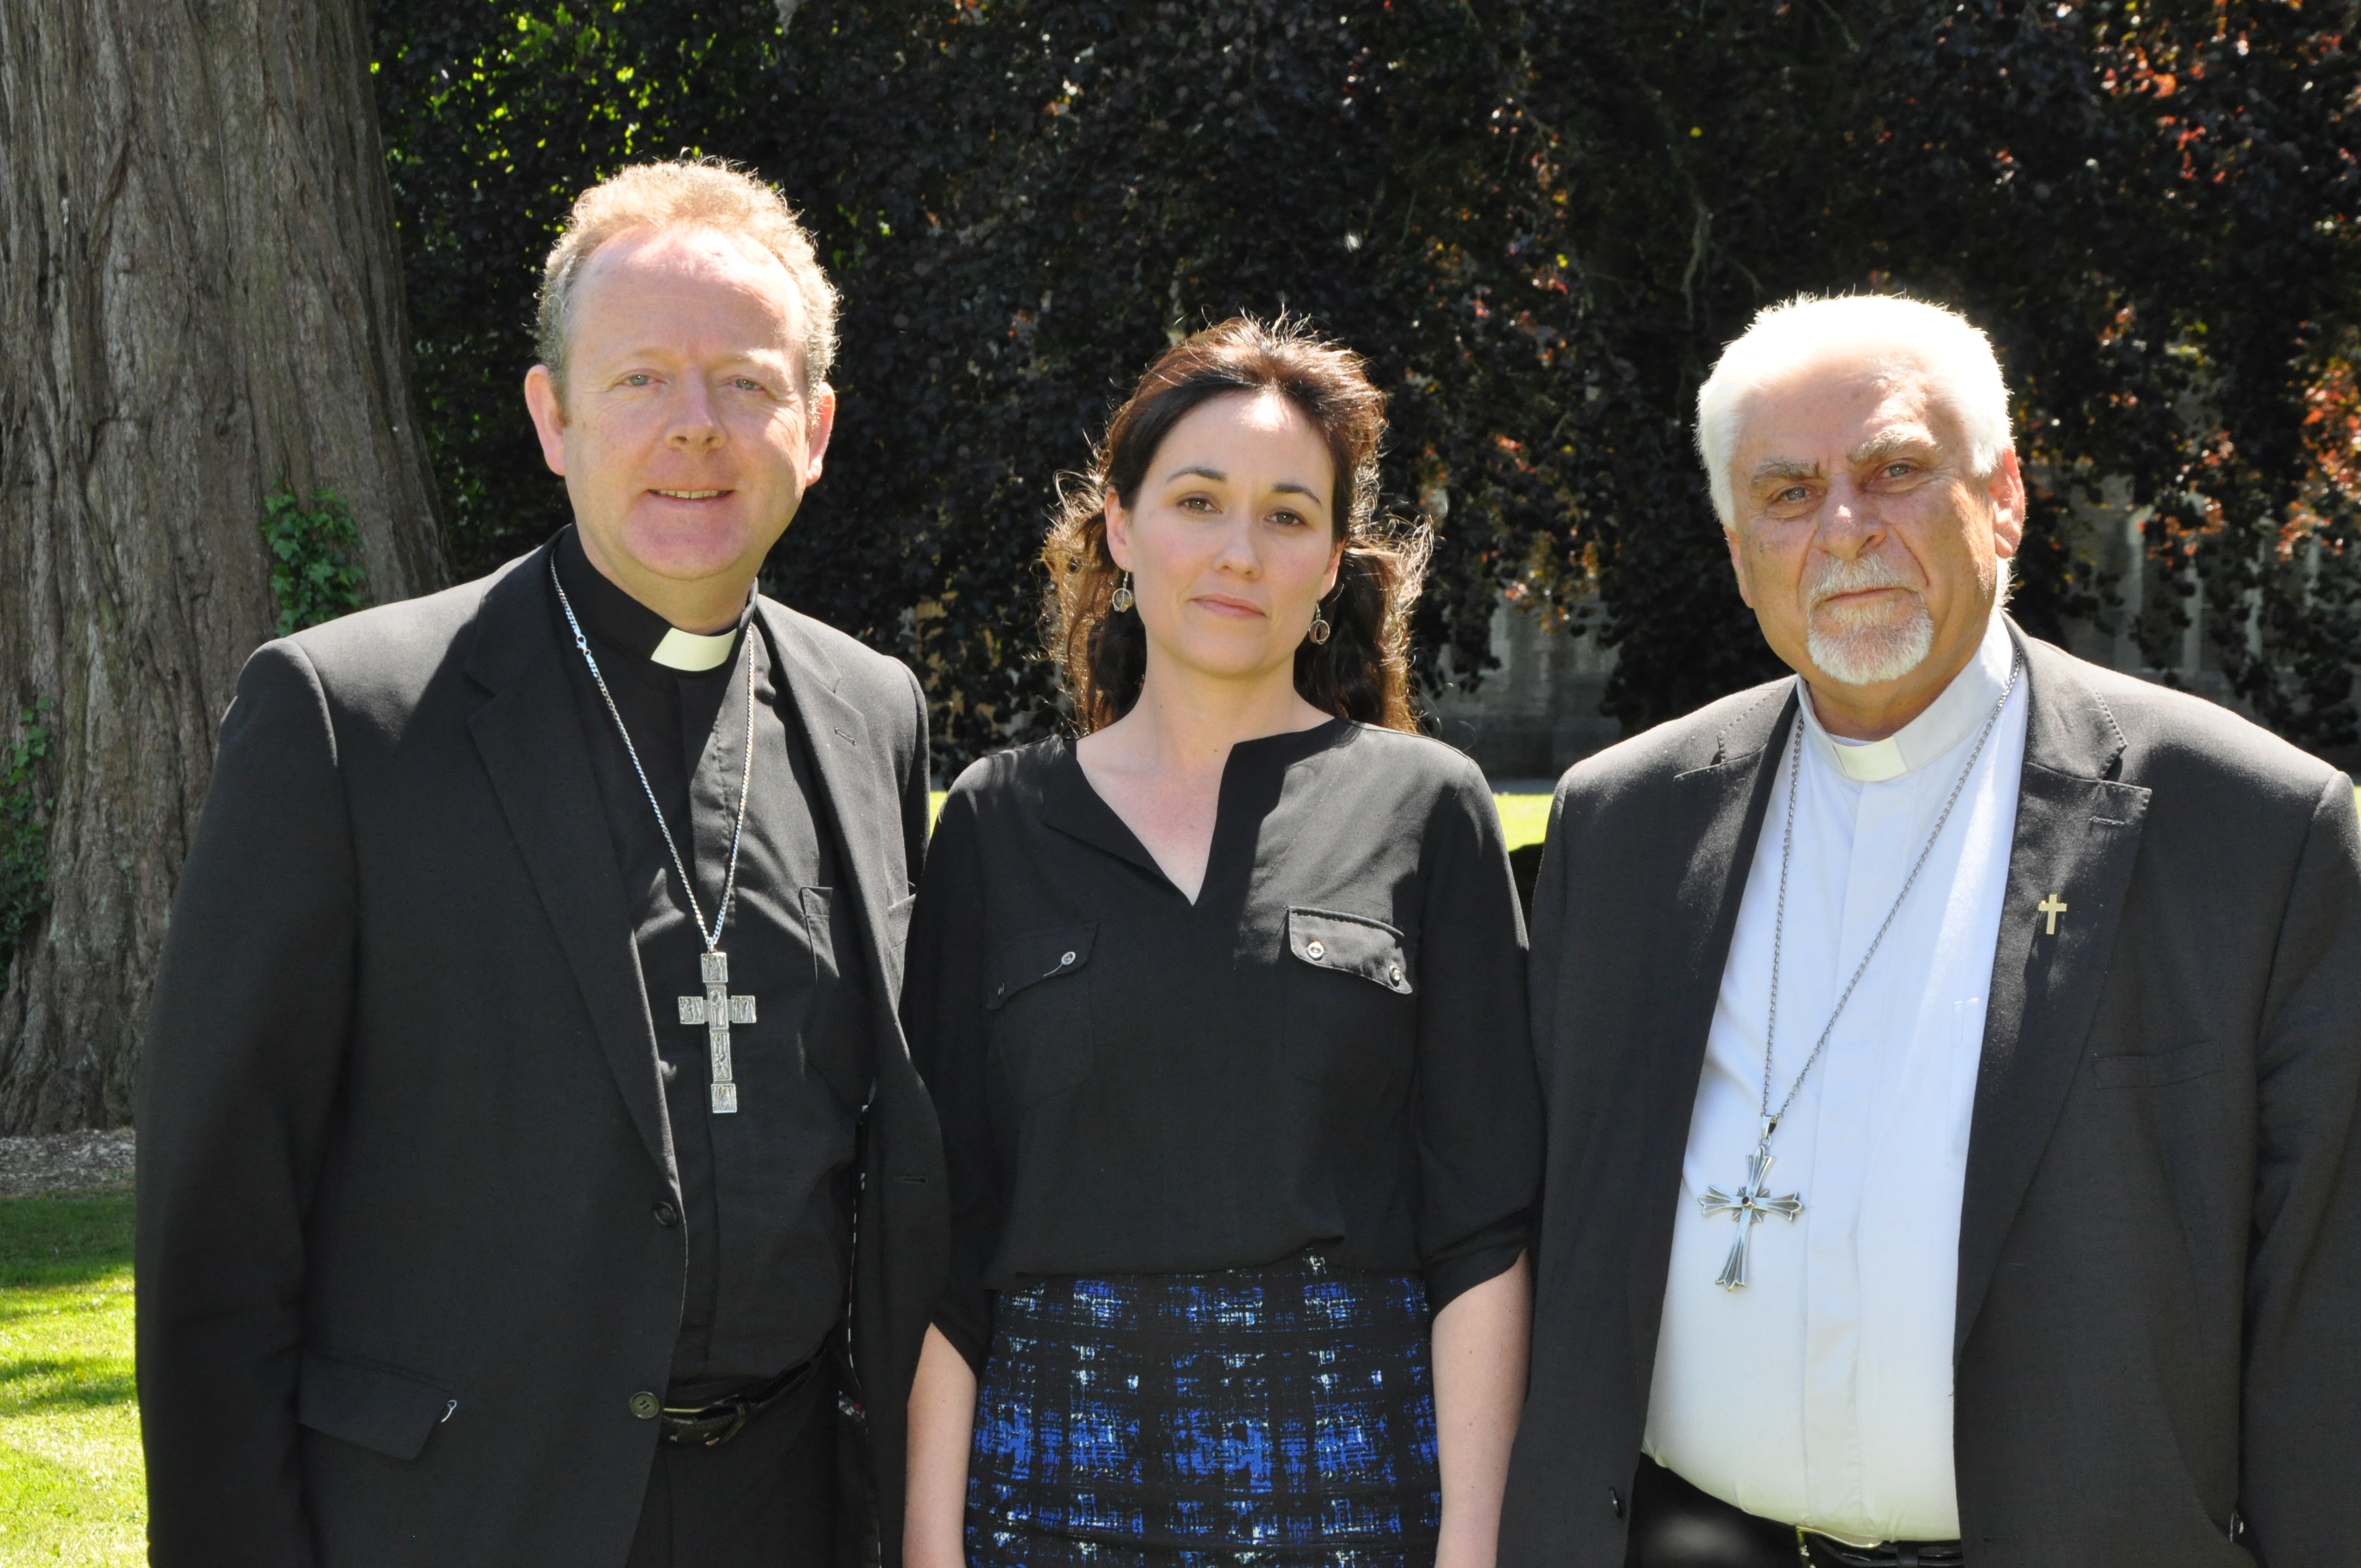 PIC 3 IBC June 2015 General Meeting - Archbishop Eamon Martin, Dr Nicola Brady, Council for Justice and Peace and the Syrian-Catholic Archbishop of Mosul Yohanna Petros Mouche